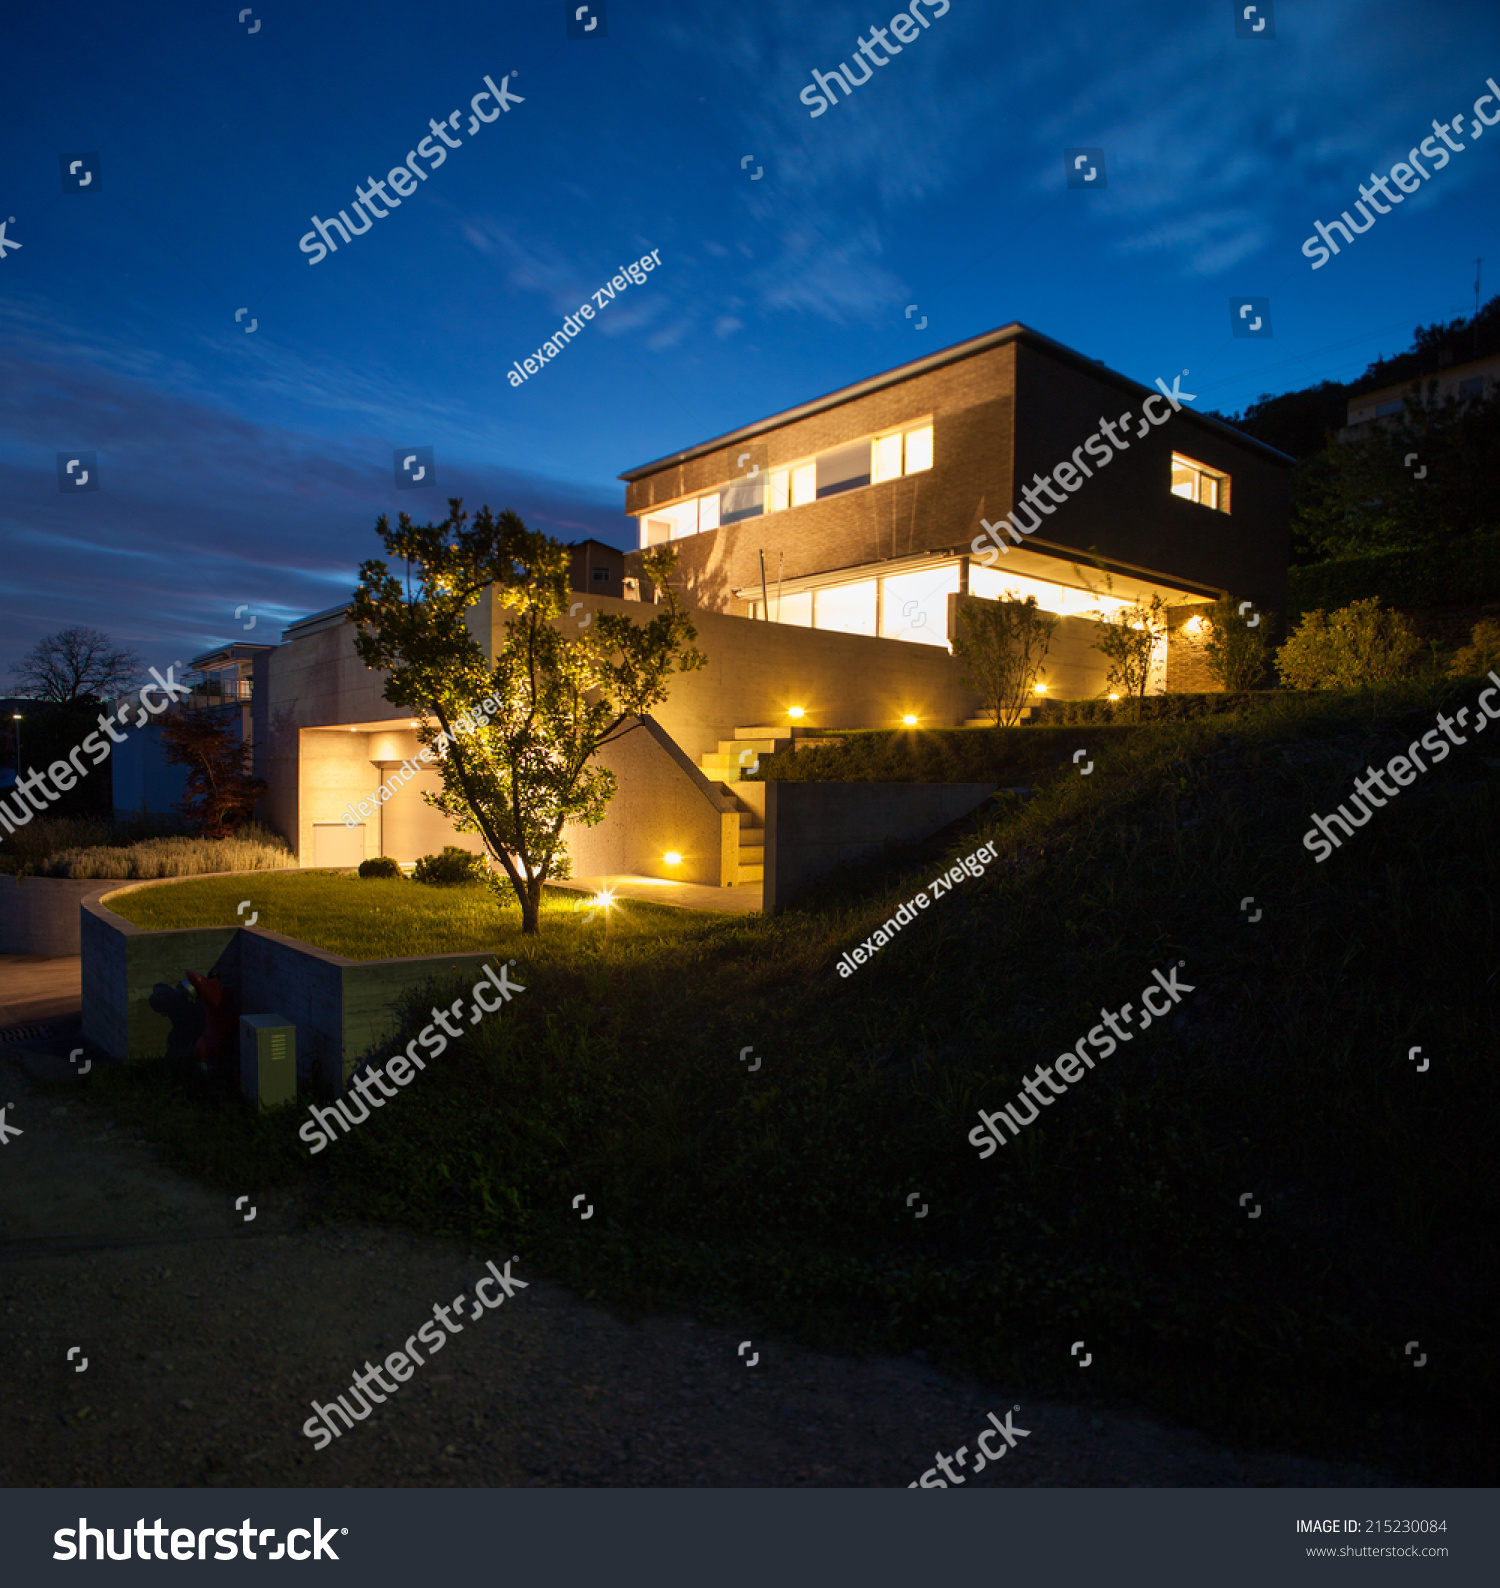 House modern design night view stock photo 215230084 for Modern house at night